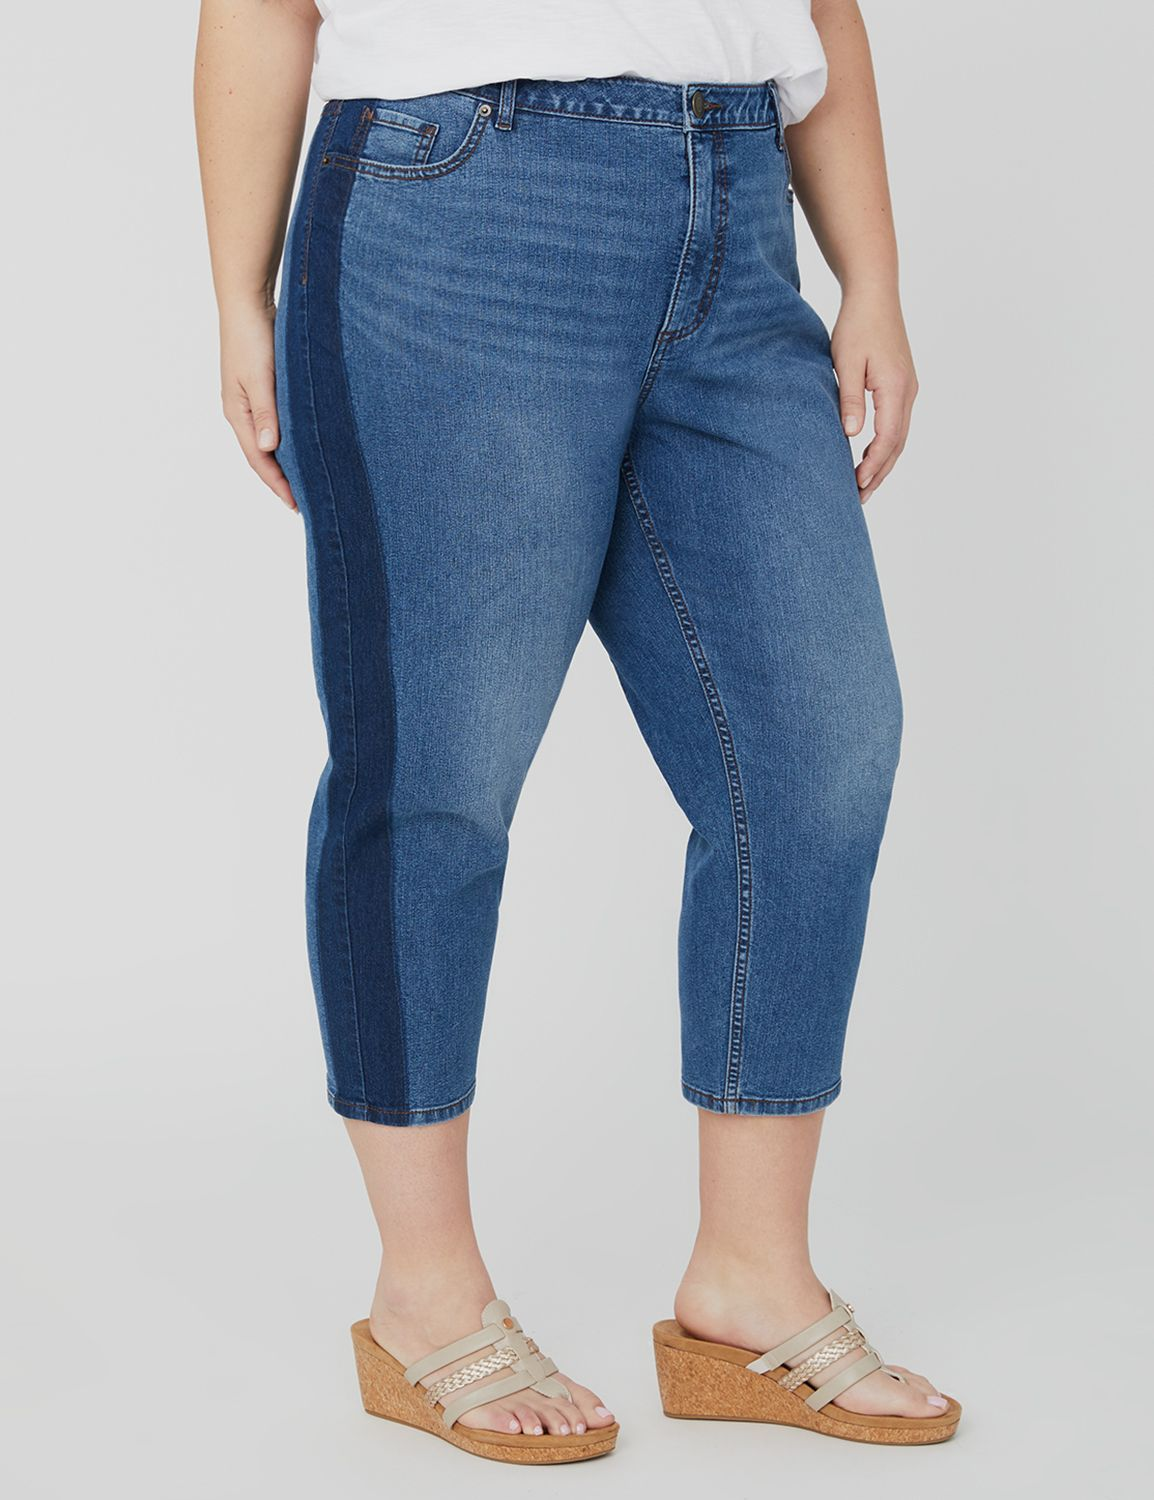 Jean Capri with Dark-Wash Stripe 1088046 2-TONE DENIM WASH ON SIDE S MP-300099572